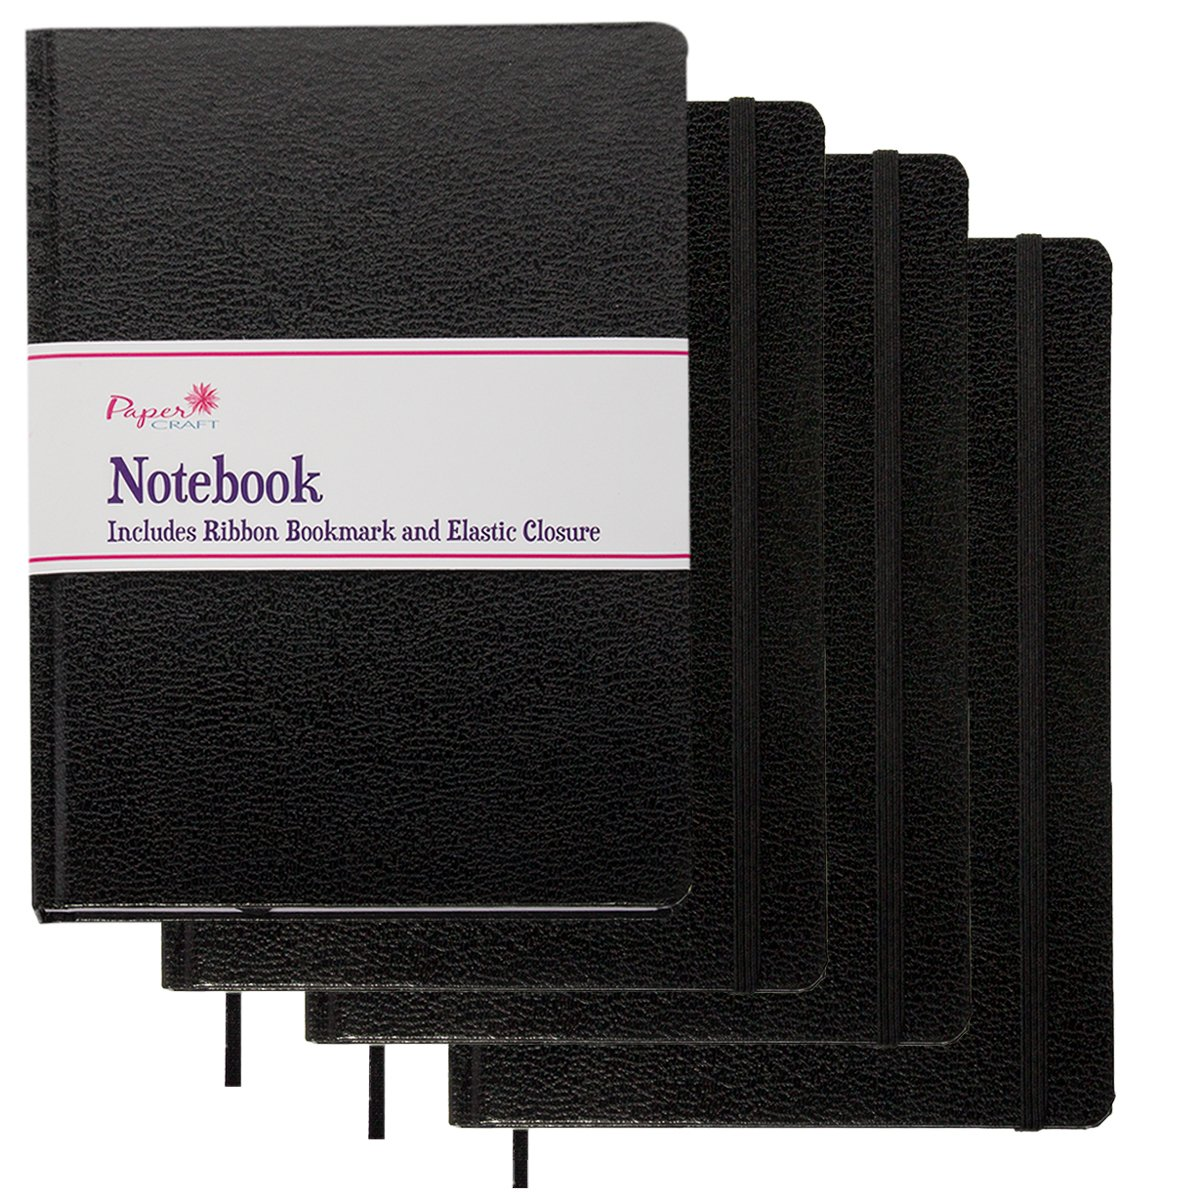 Paper Craft (4 Pack) 8.5 x 5.5 Leatherette Lined Writing Journals Wide Ruled Banded Notebook with Ribbon Bookmark, Black, (a5 Size)